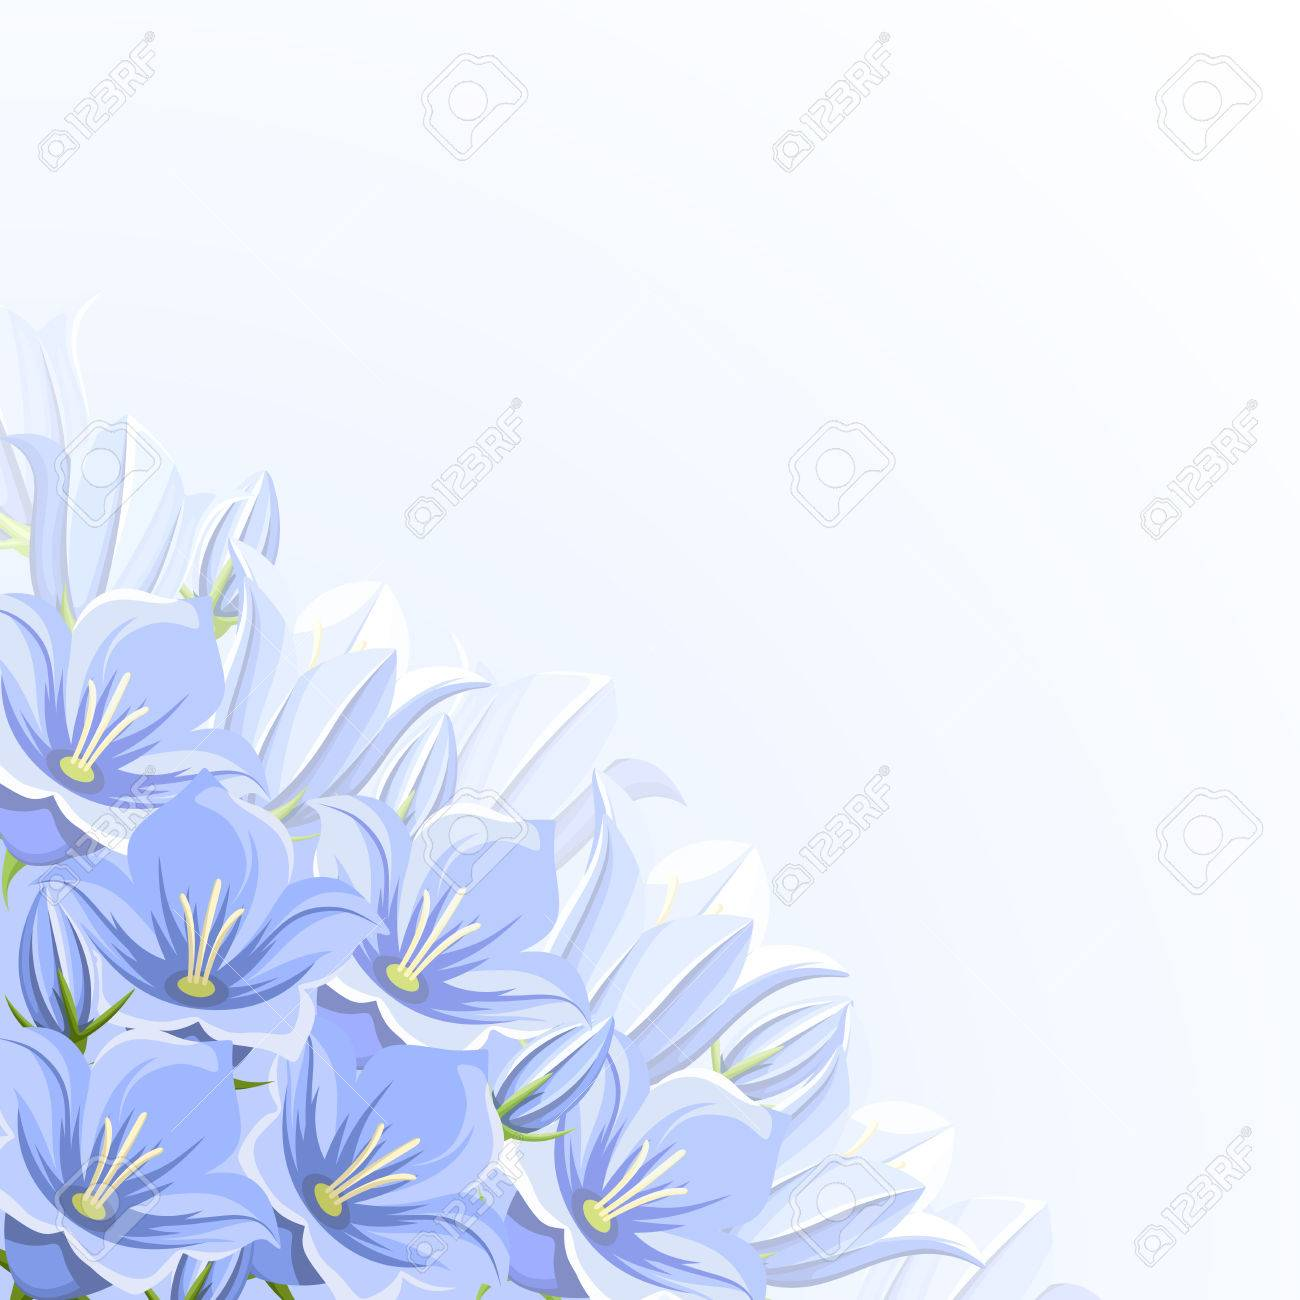 Corner background with blue bluebell flowers royalty free cliparts corner background with blue bluebell flowers stock vector 54267588 mightylinksfo Gallery